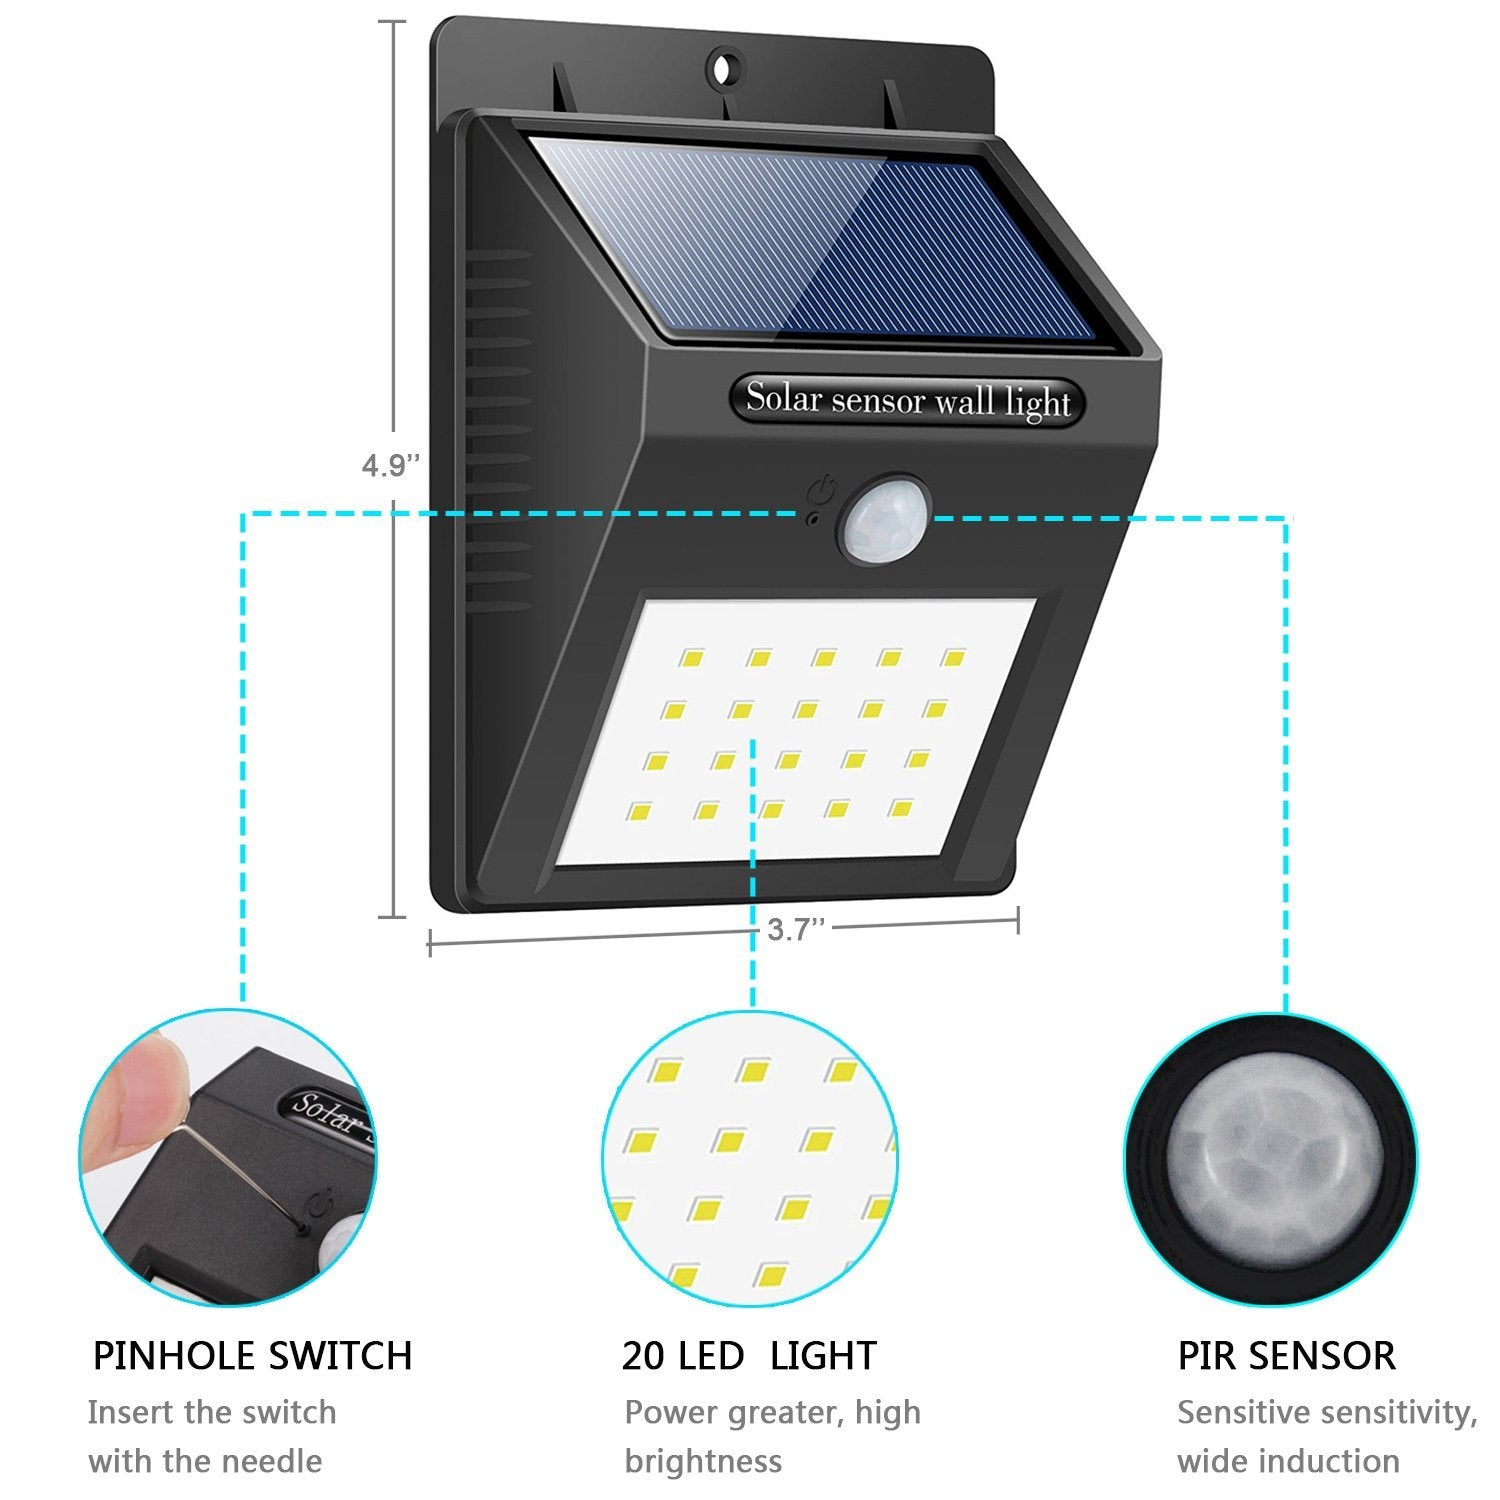 Solar light 20 led bright outdoor security lights with motion solar light 20 led bright outdoor security lights with motion sensor wireless waterproof night lighting solar powered spotlight for wall path patio mozeypictures Images